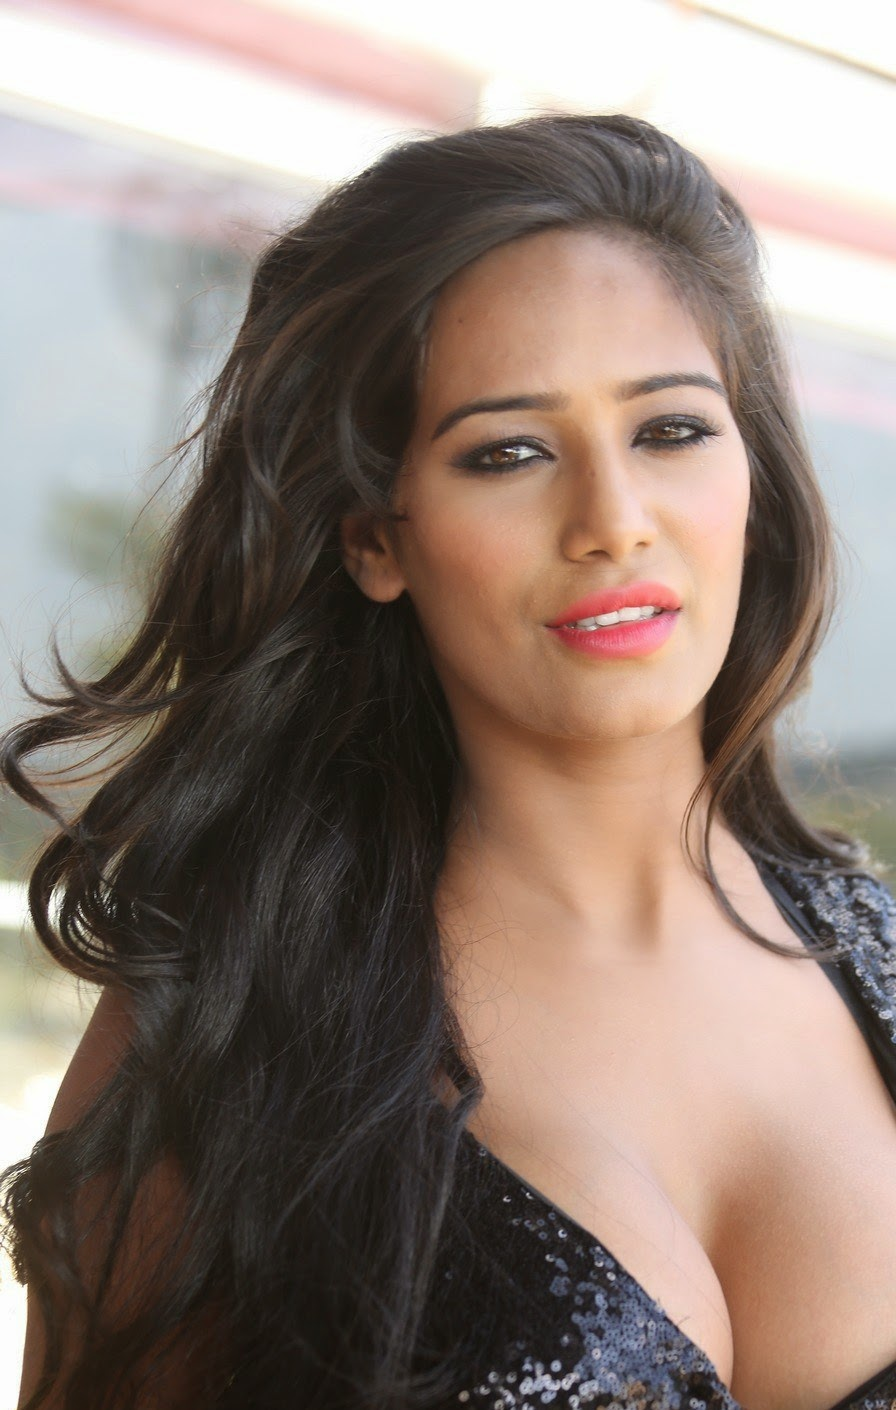 Porno Poonam Pandey  naked (58 images), Twitter, braless